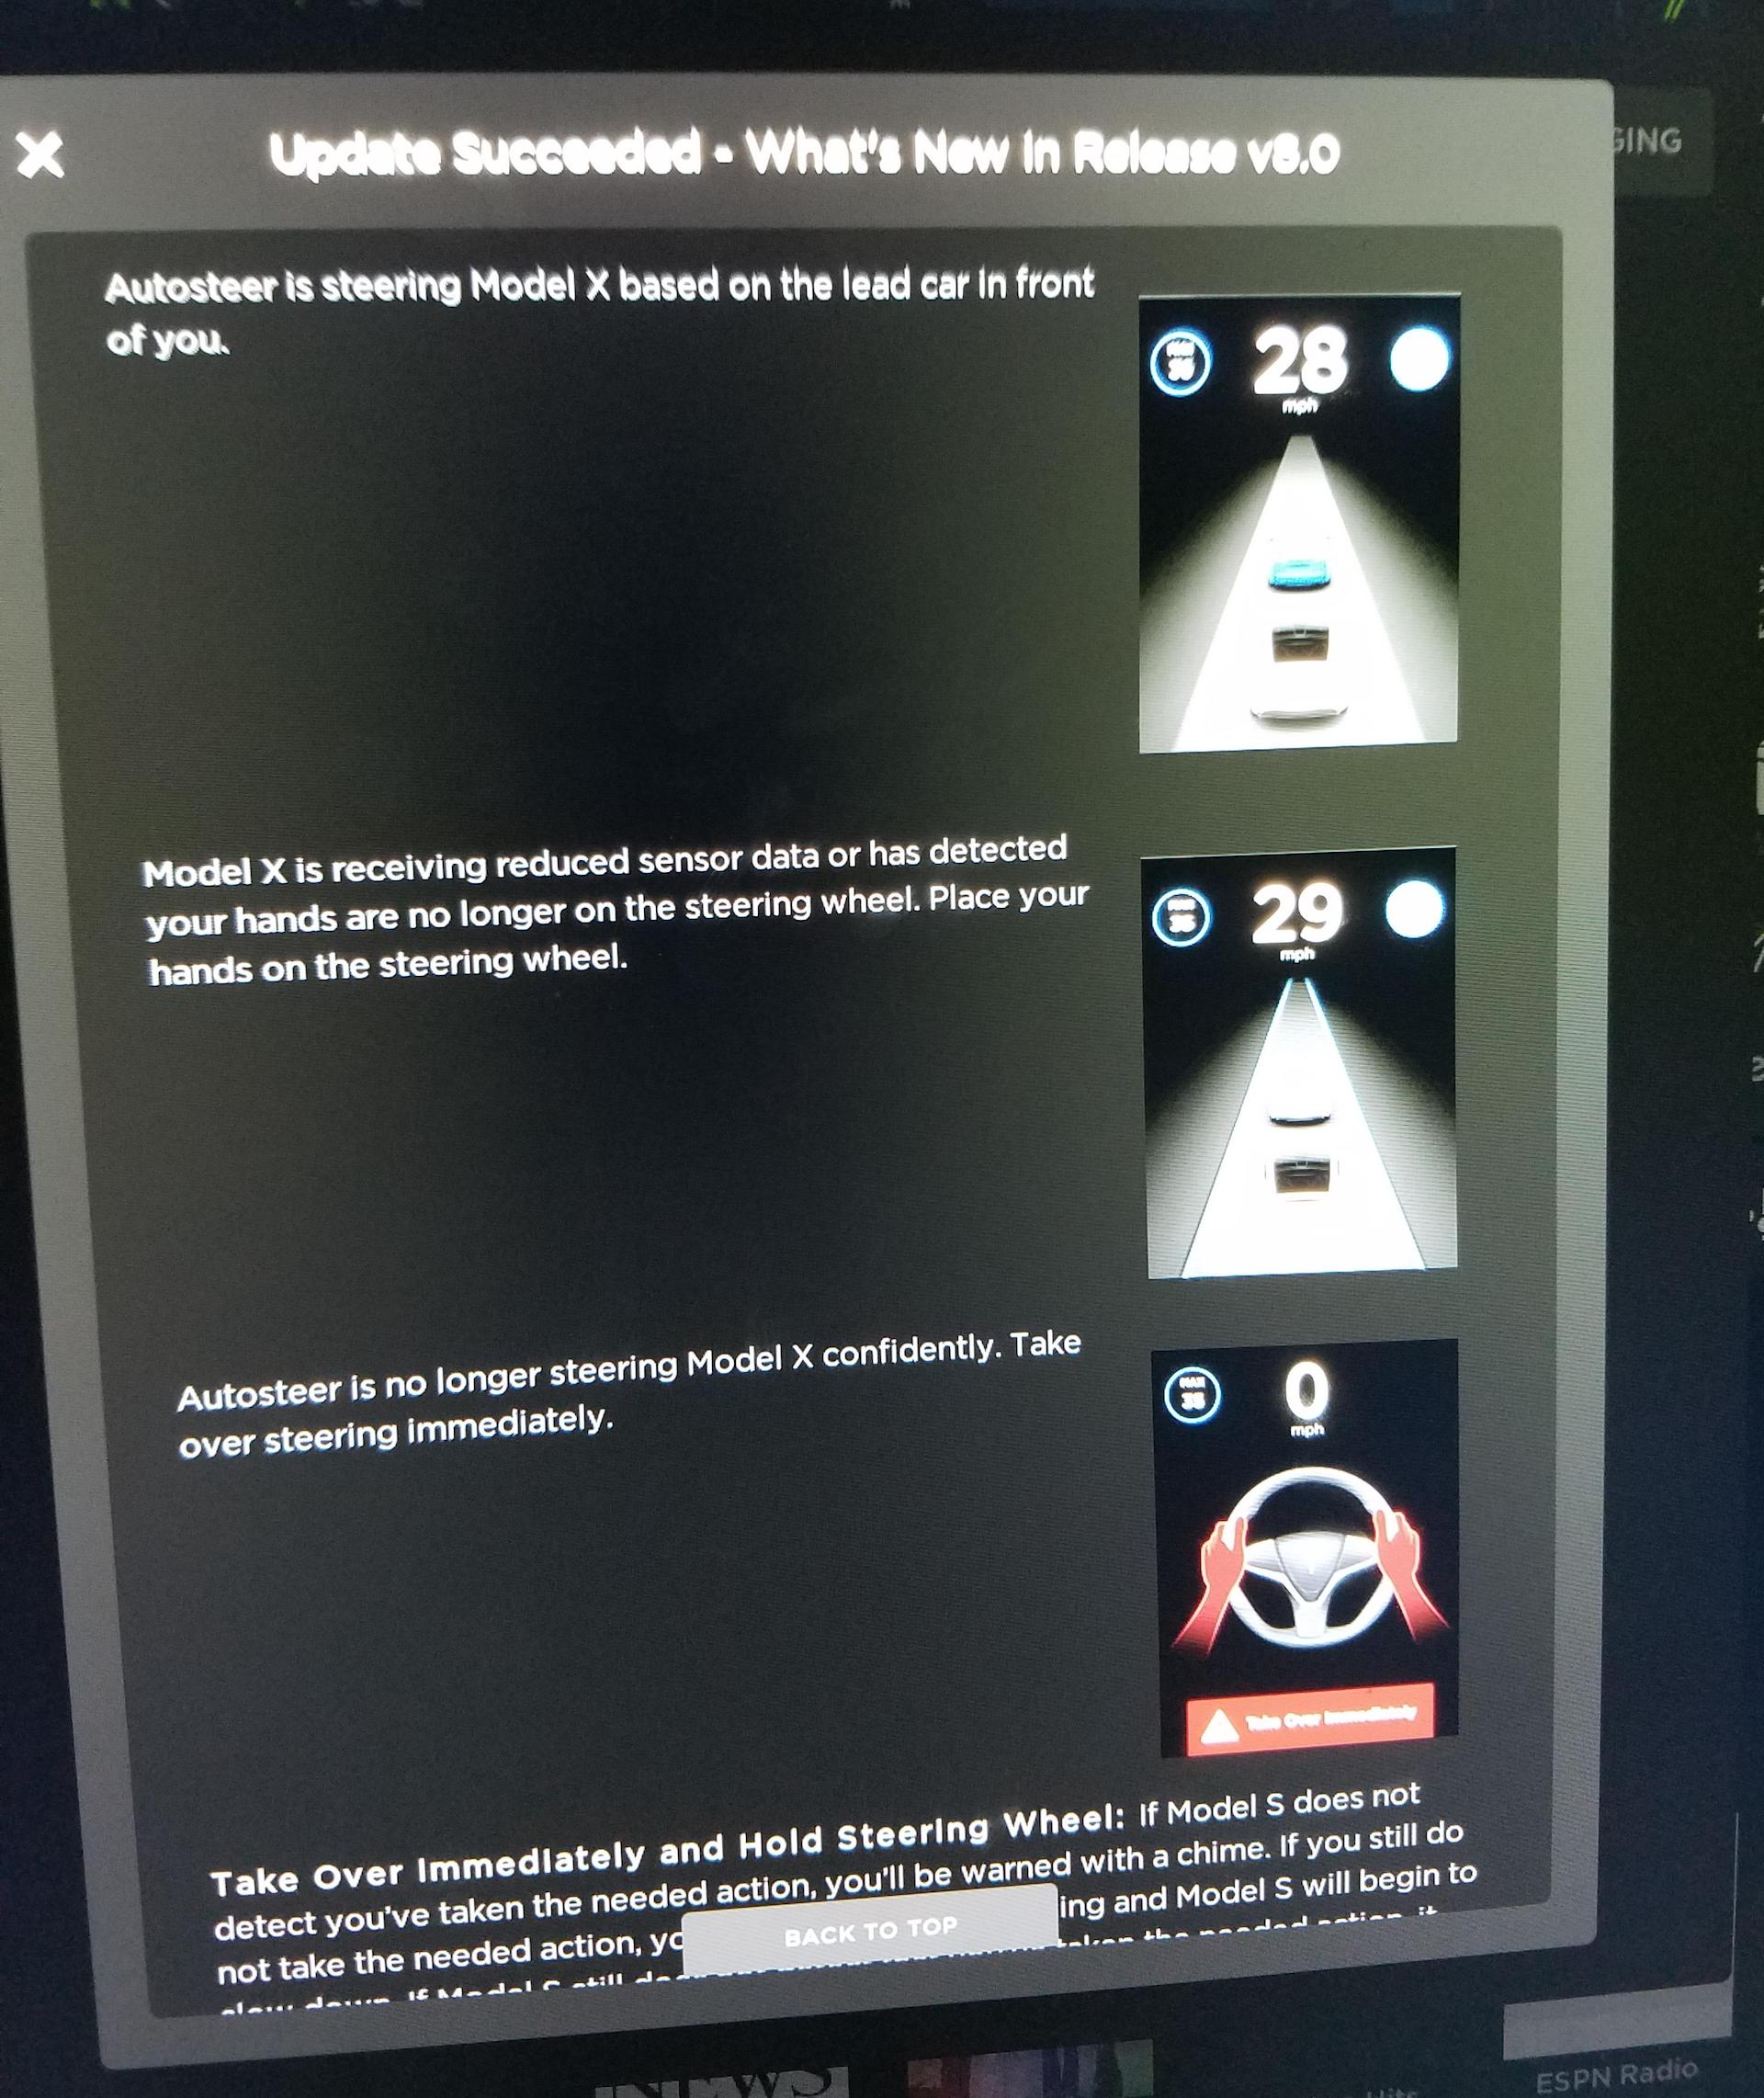 Tesla_Enhanced_Autopilot_release-notes-6